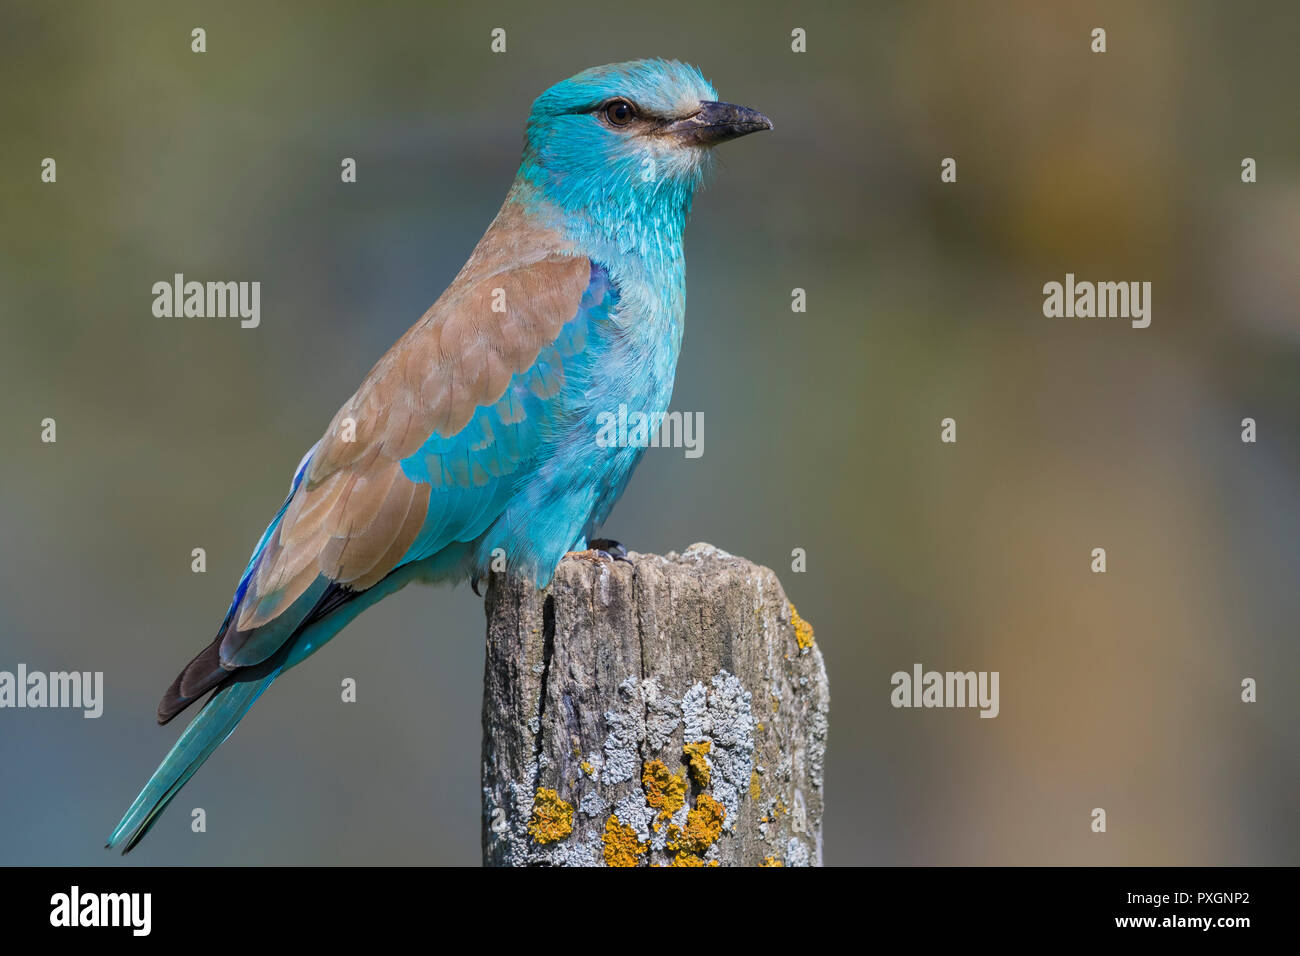 European Roller (Coracias garrulus), side view of an adult perched on a post Stock Photo